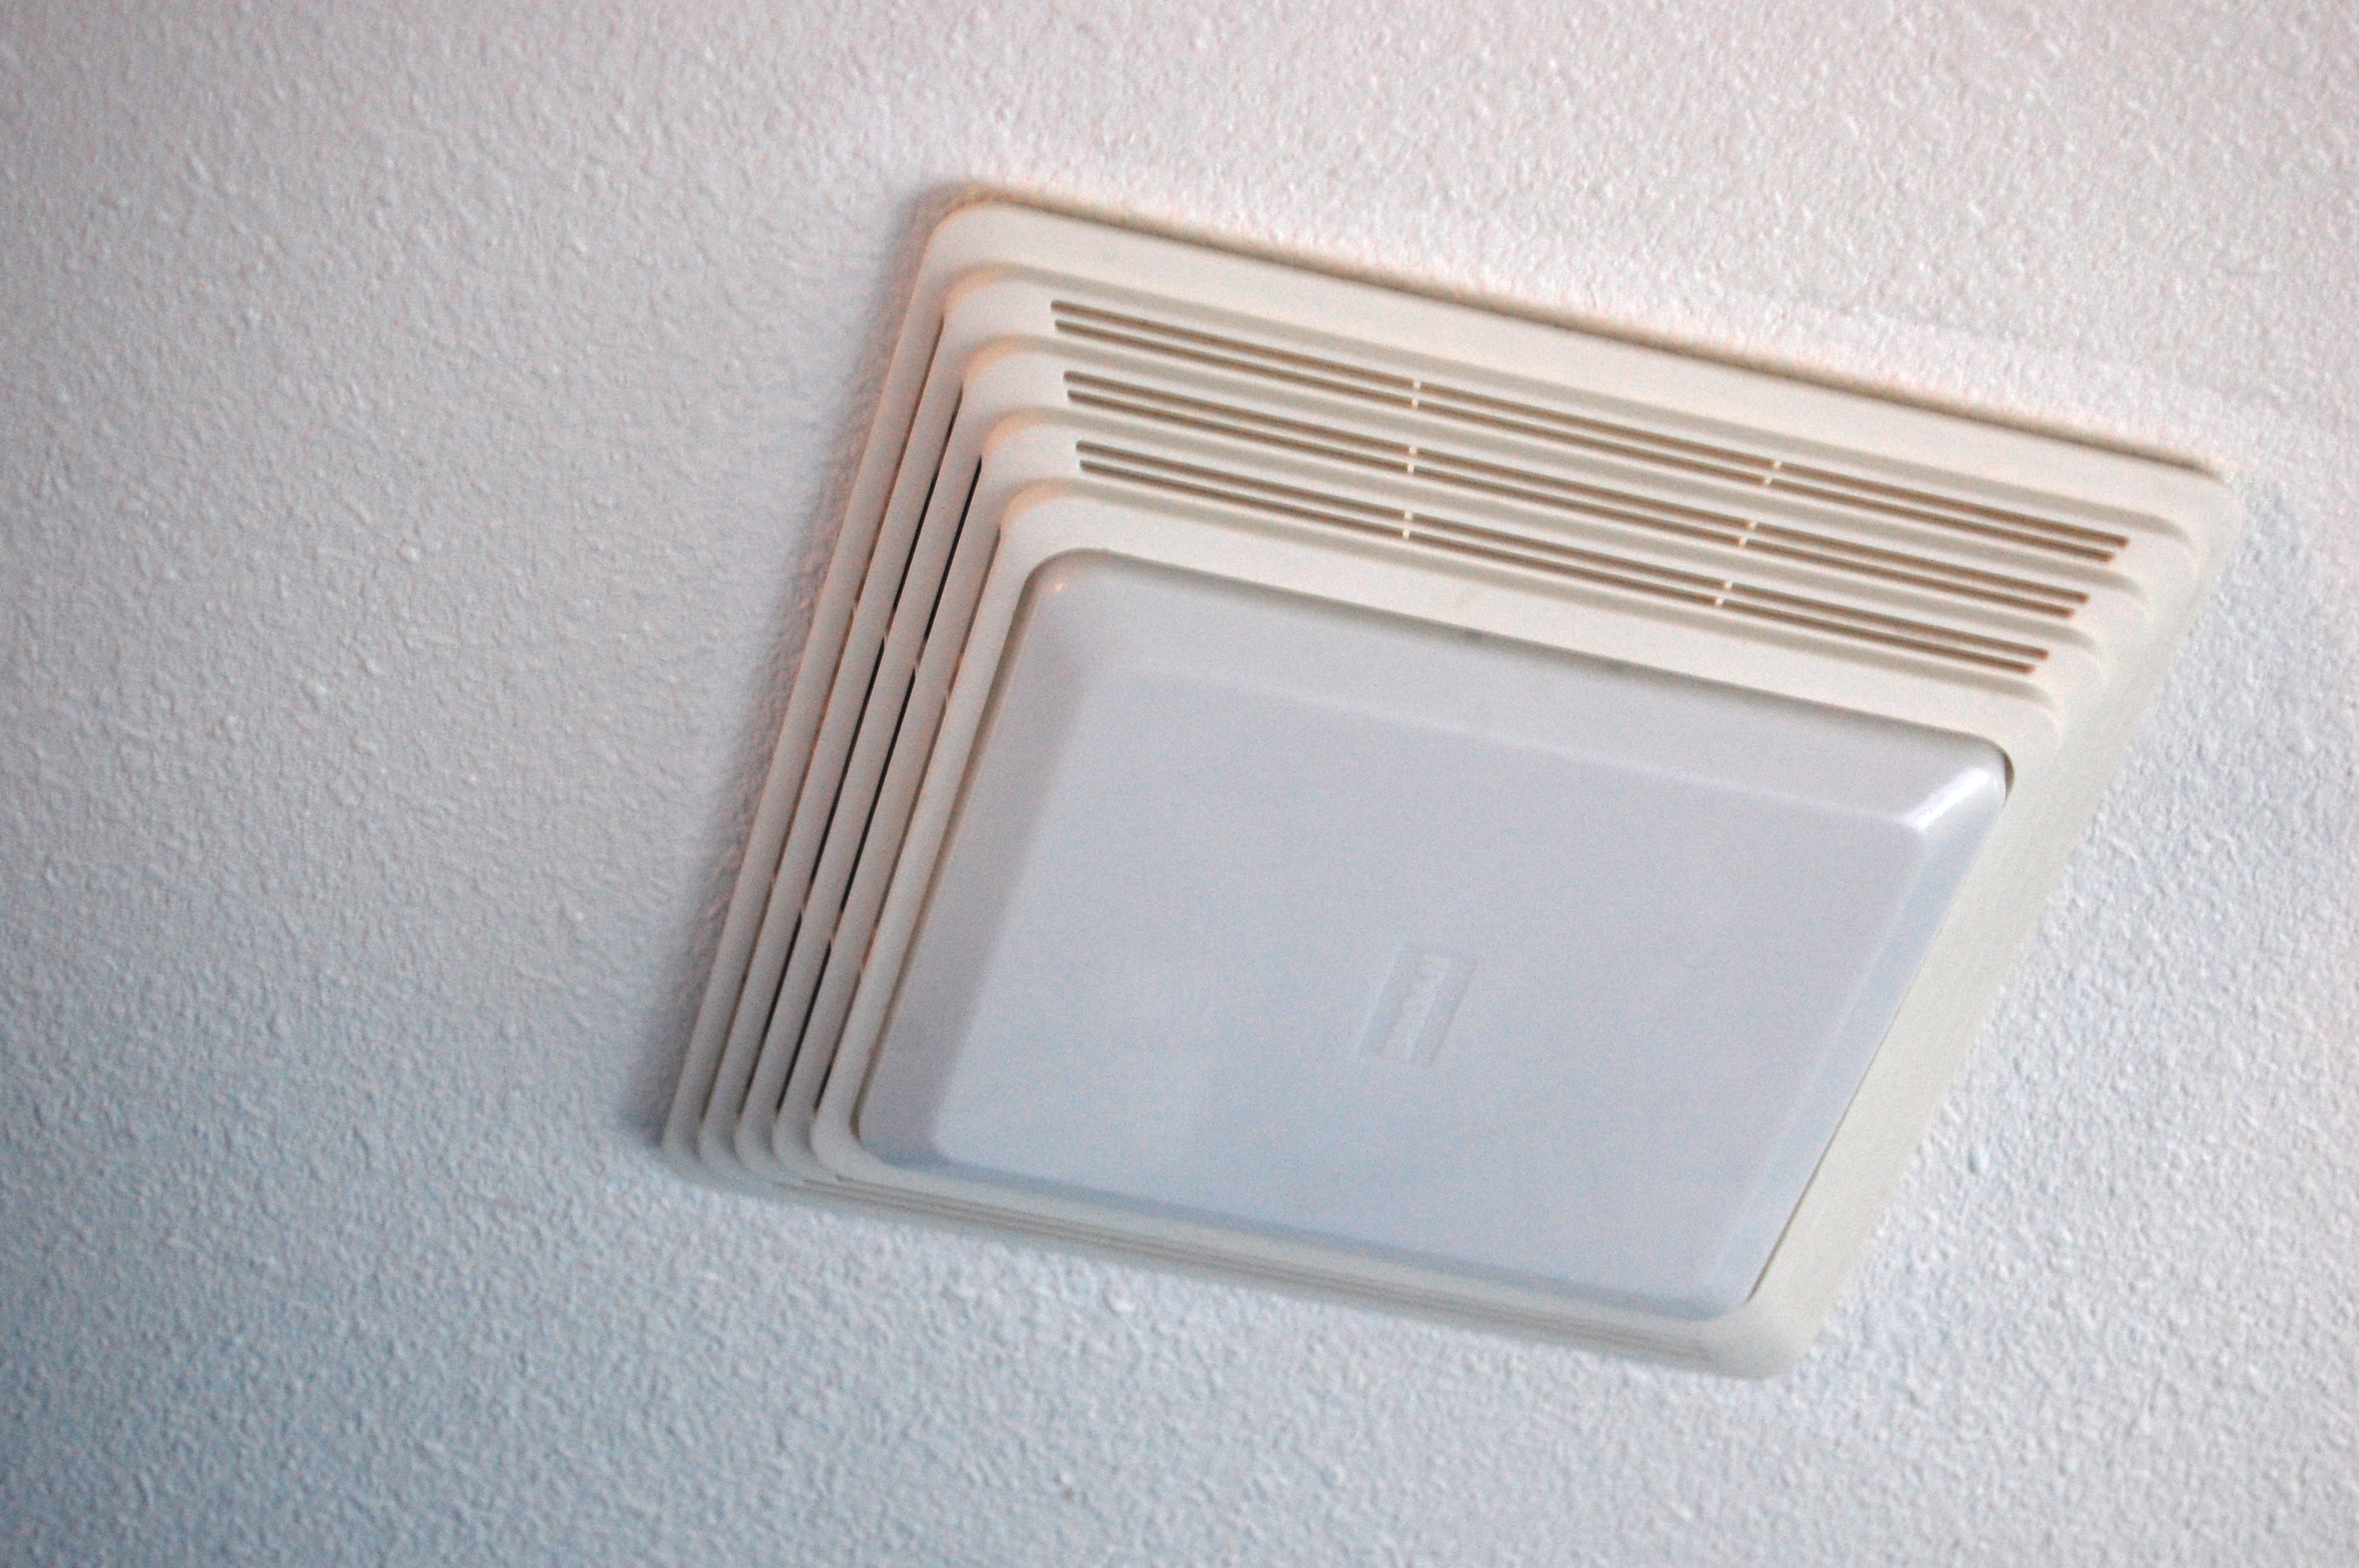 cleaning your bathroom fan with a